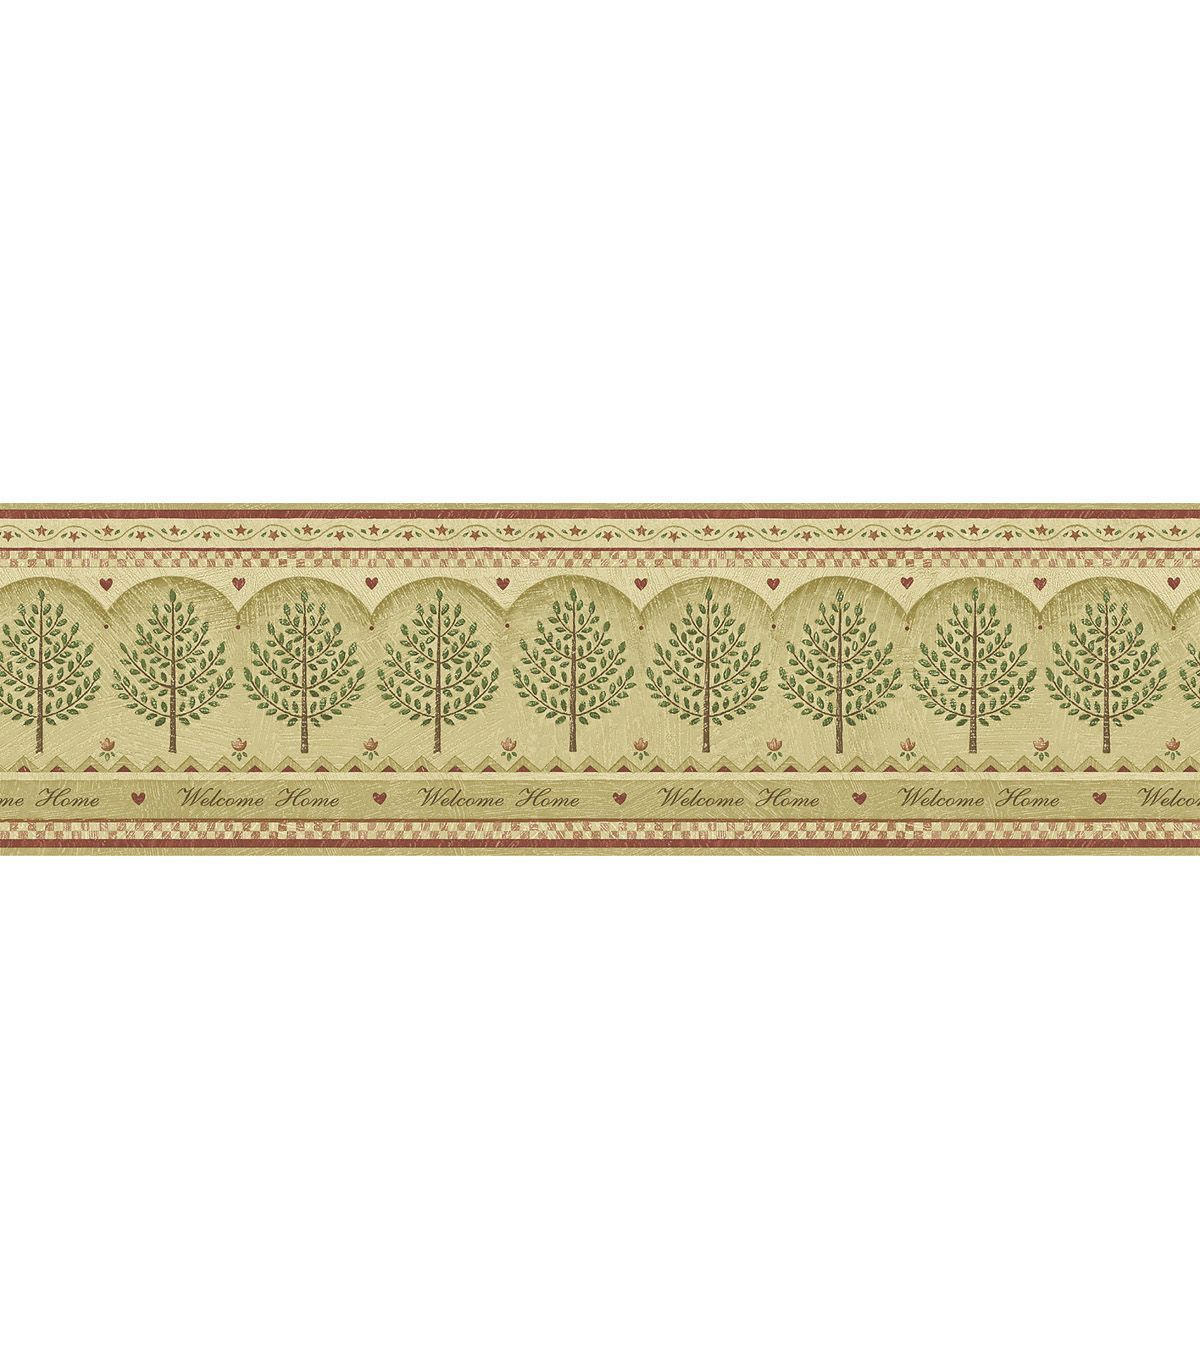 Home Tree Wallpaper Border, Beige Home wallpaper